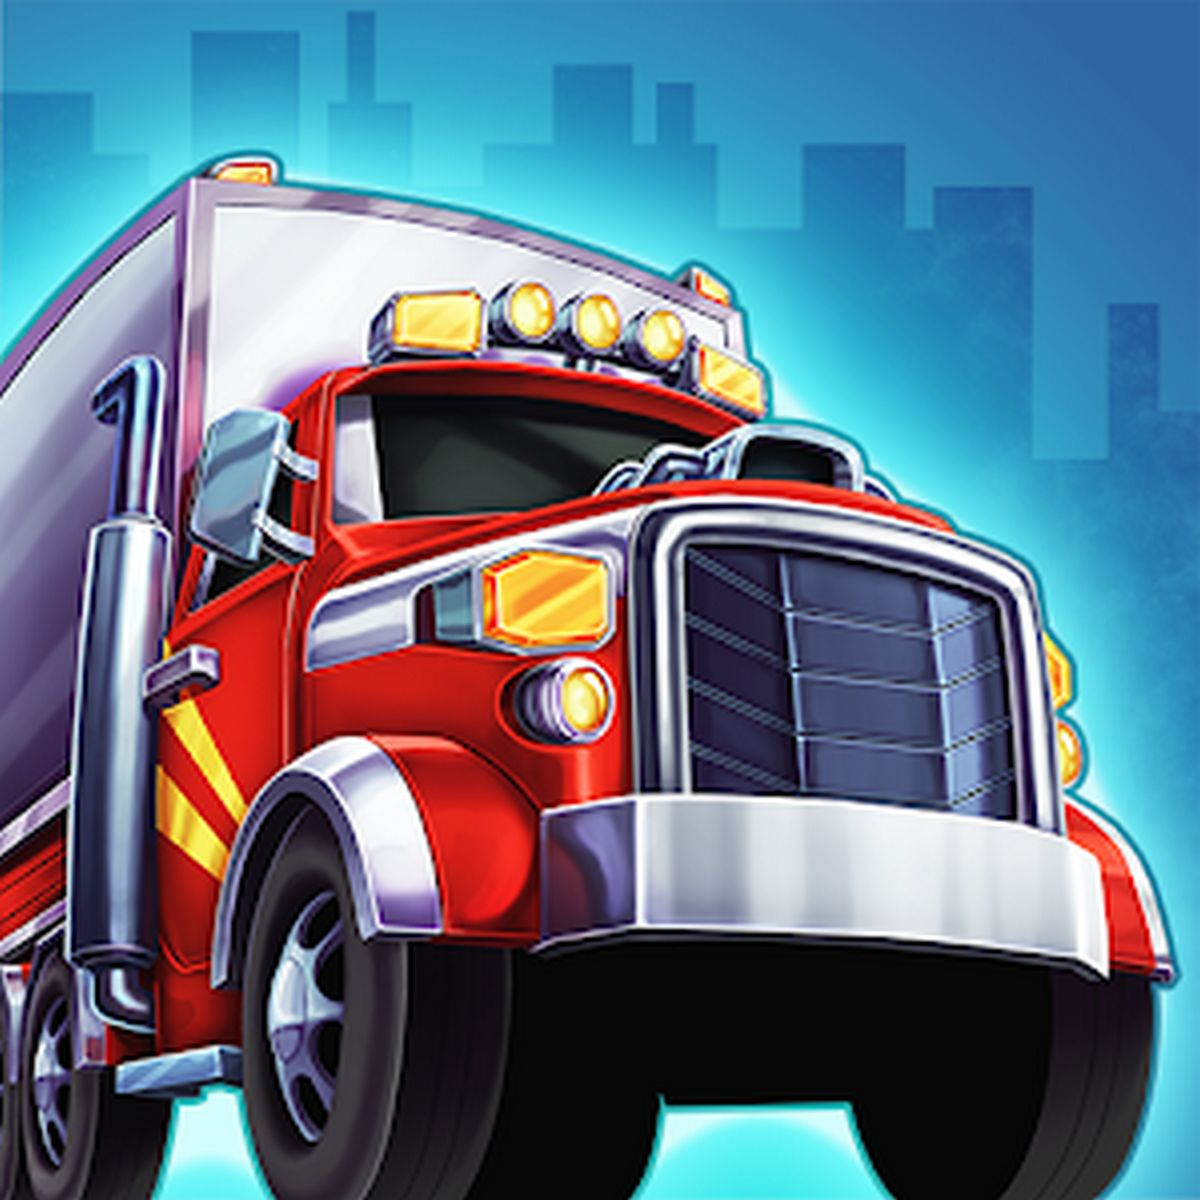 Transit King Tycoon - Transport Empire Builder APK MOD